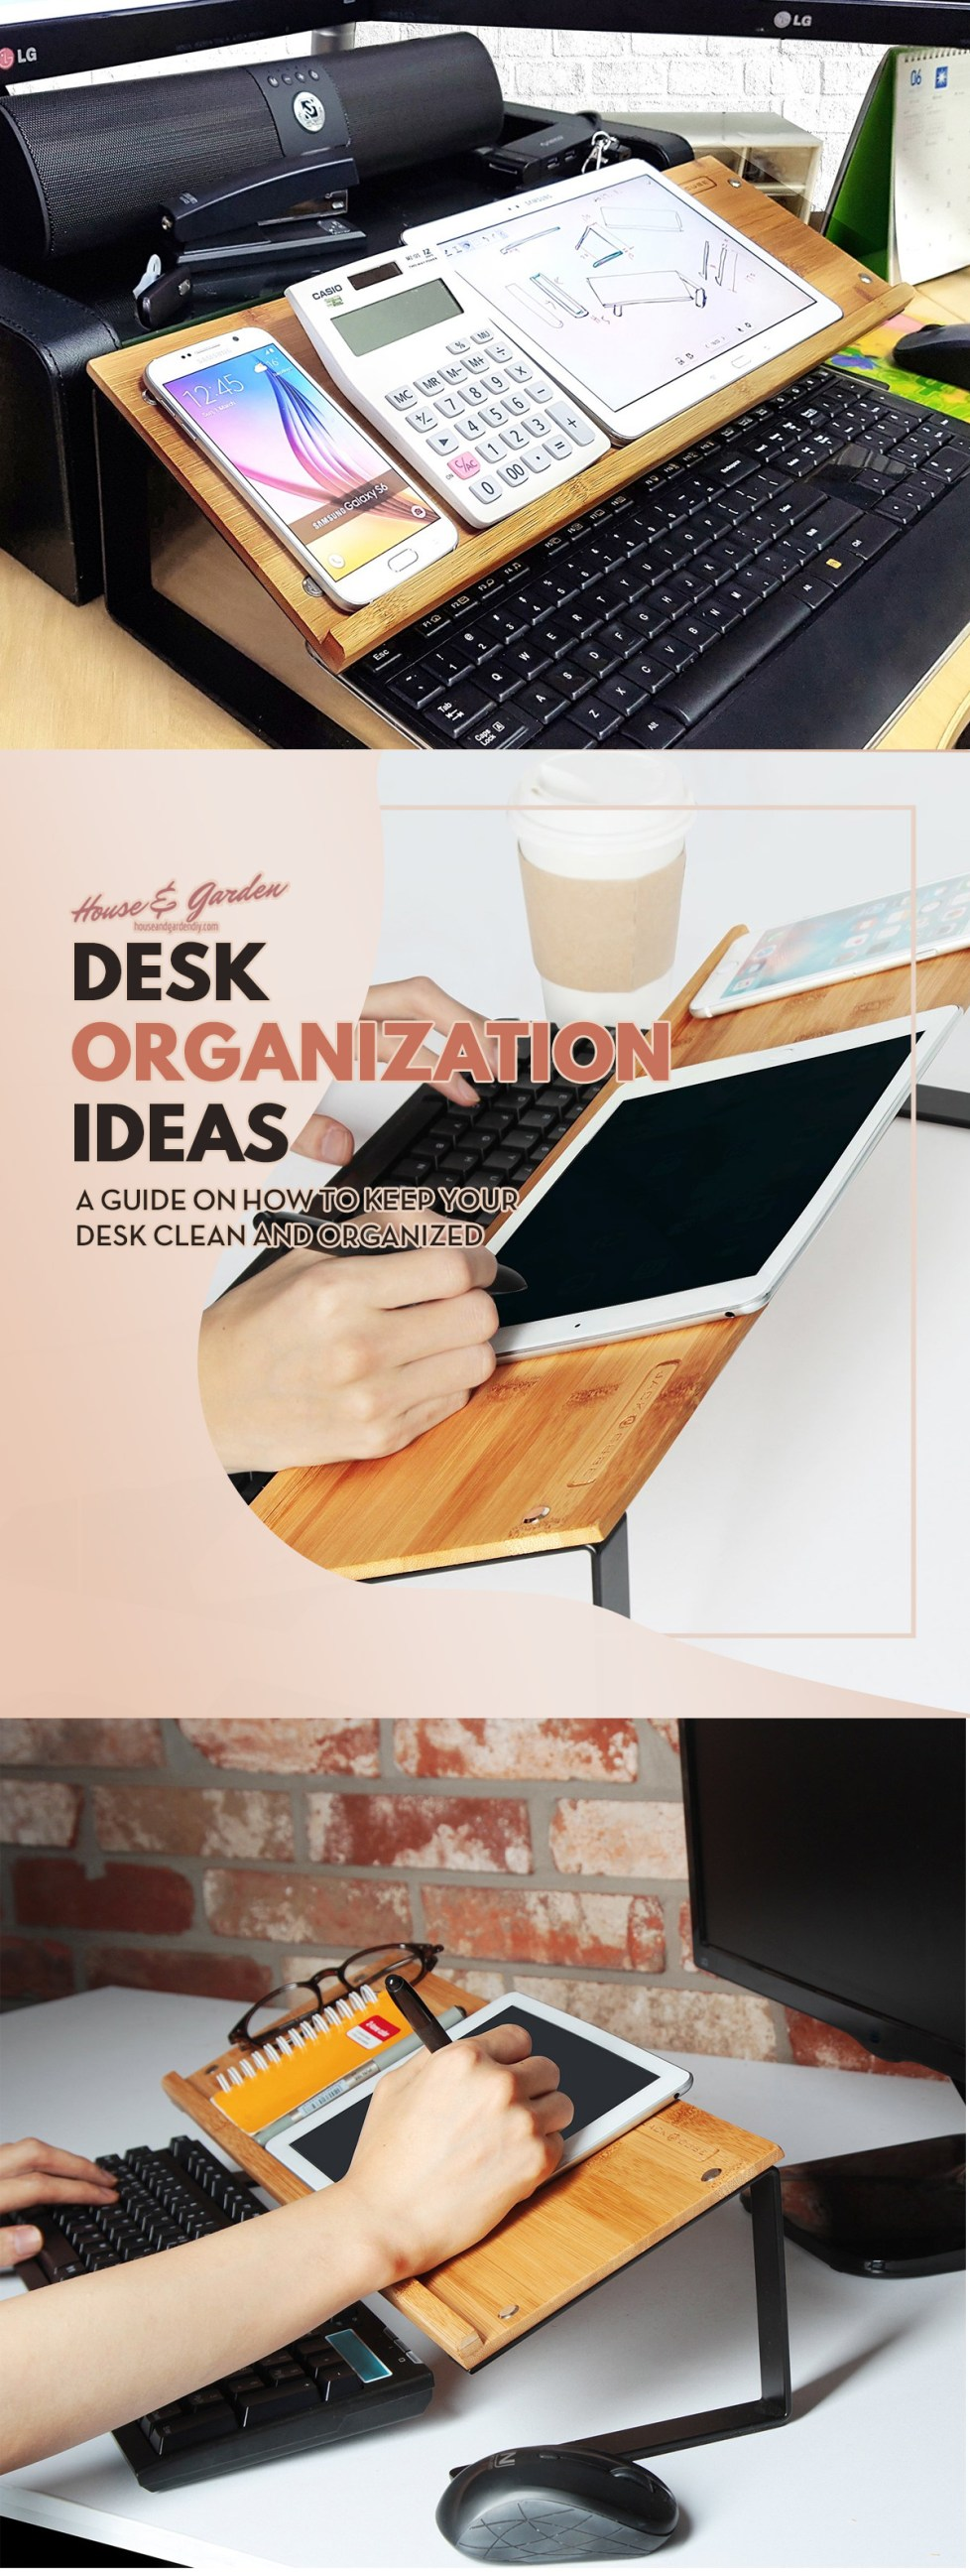 10 tips to home organization